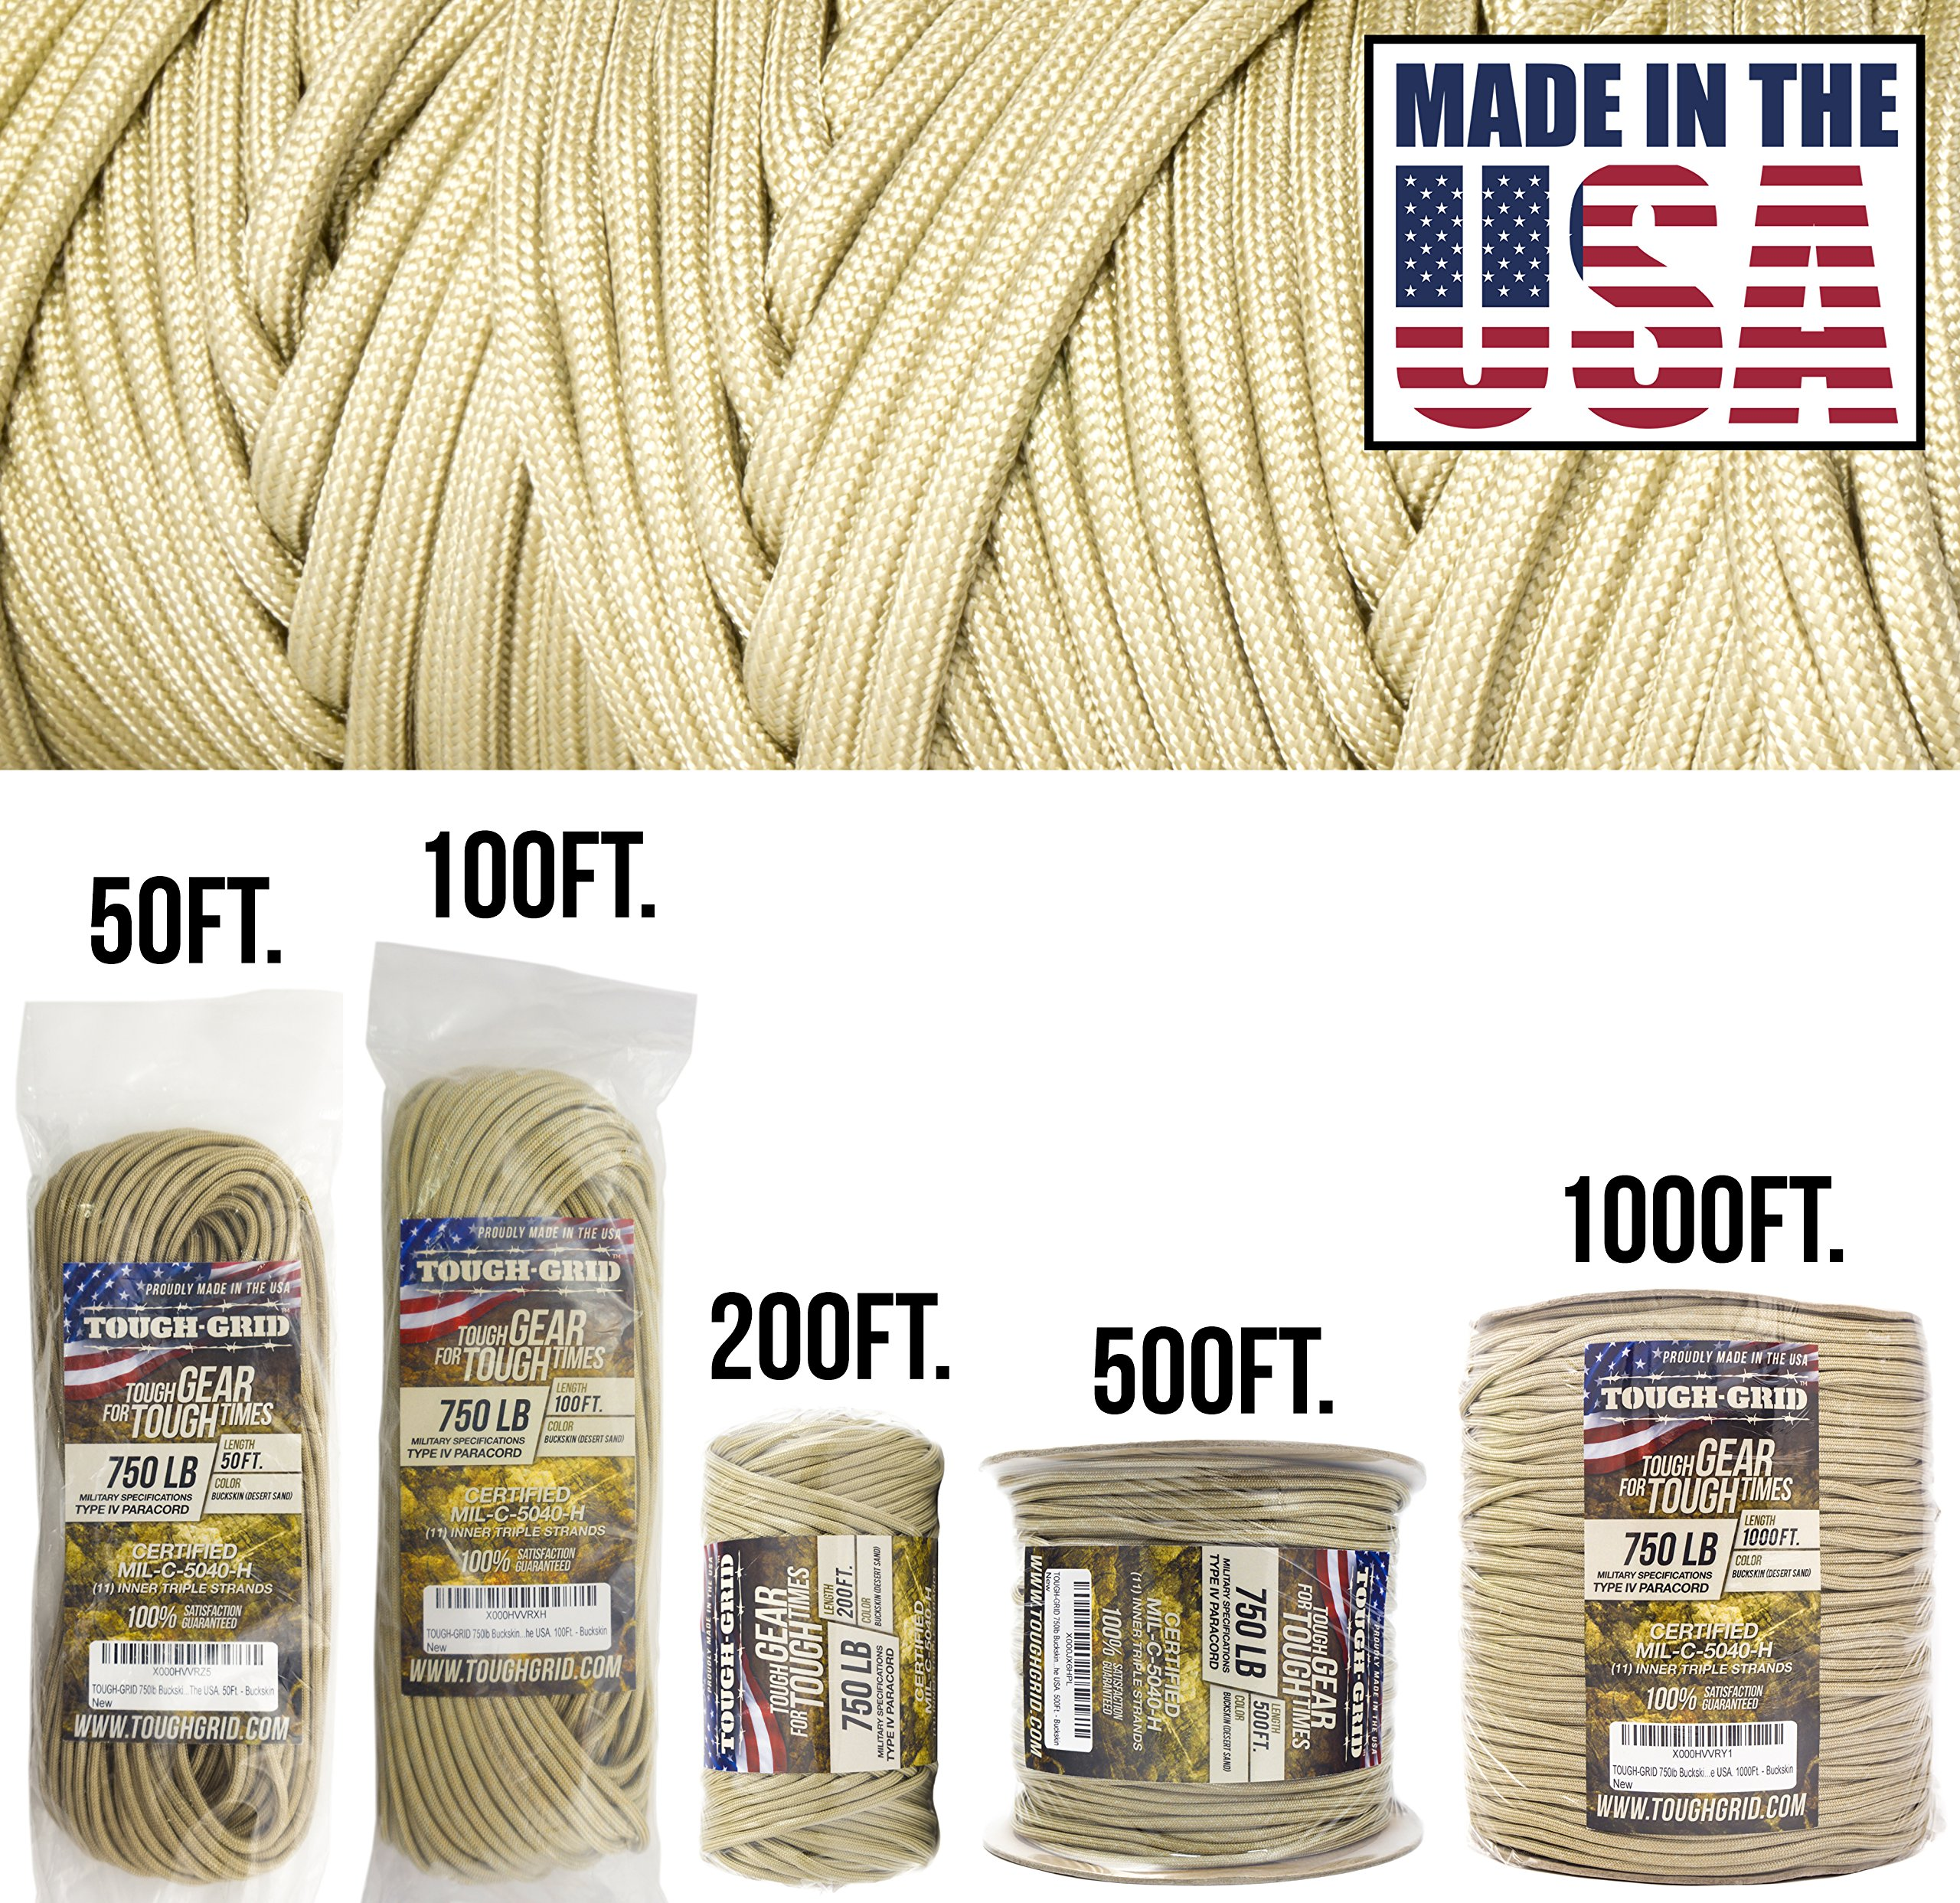 TOUGH-GRID 750lb Buckskin (Desert Sand) Paracord/Parachute Cord - Genuine Mil Spec Type IV 750lb Paracord Used by The US Military (MIl-C-5040-H) - 100% Nylon - Made in The USA. 200Ft. - Buckskin by TOUGH-GRID (Image #1)